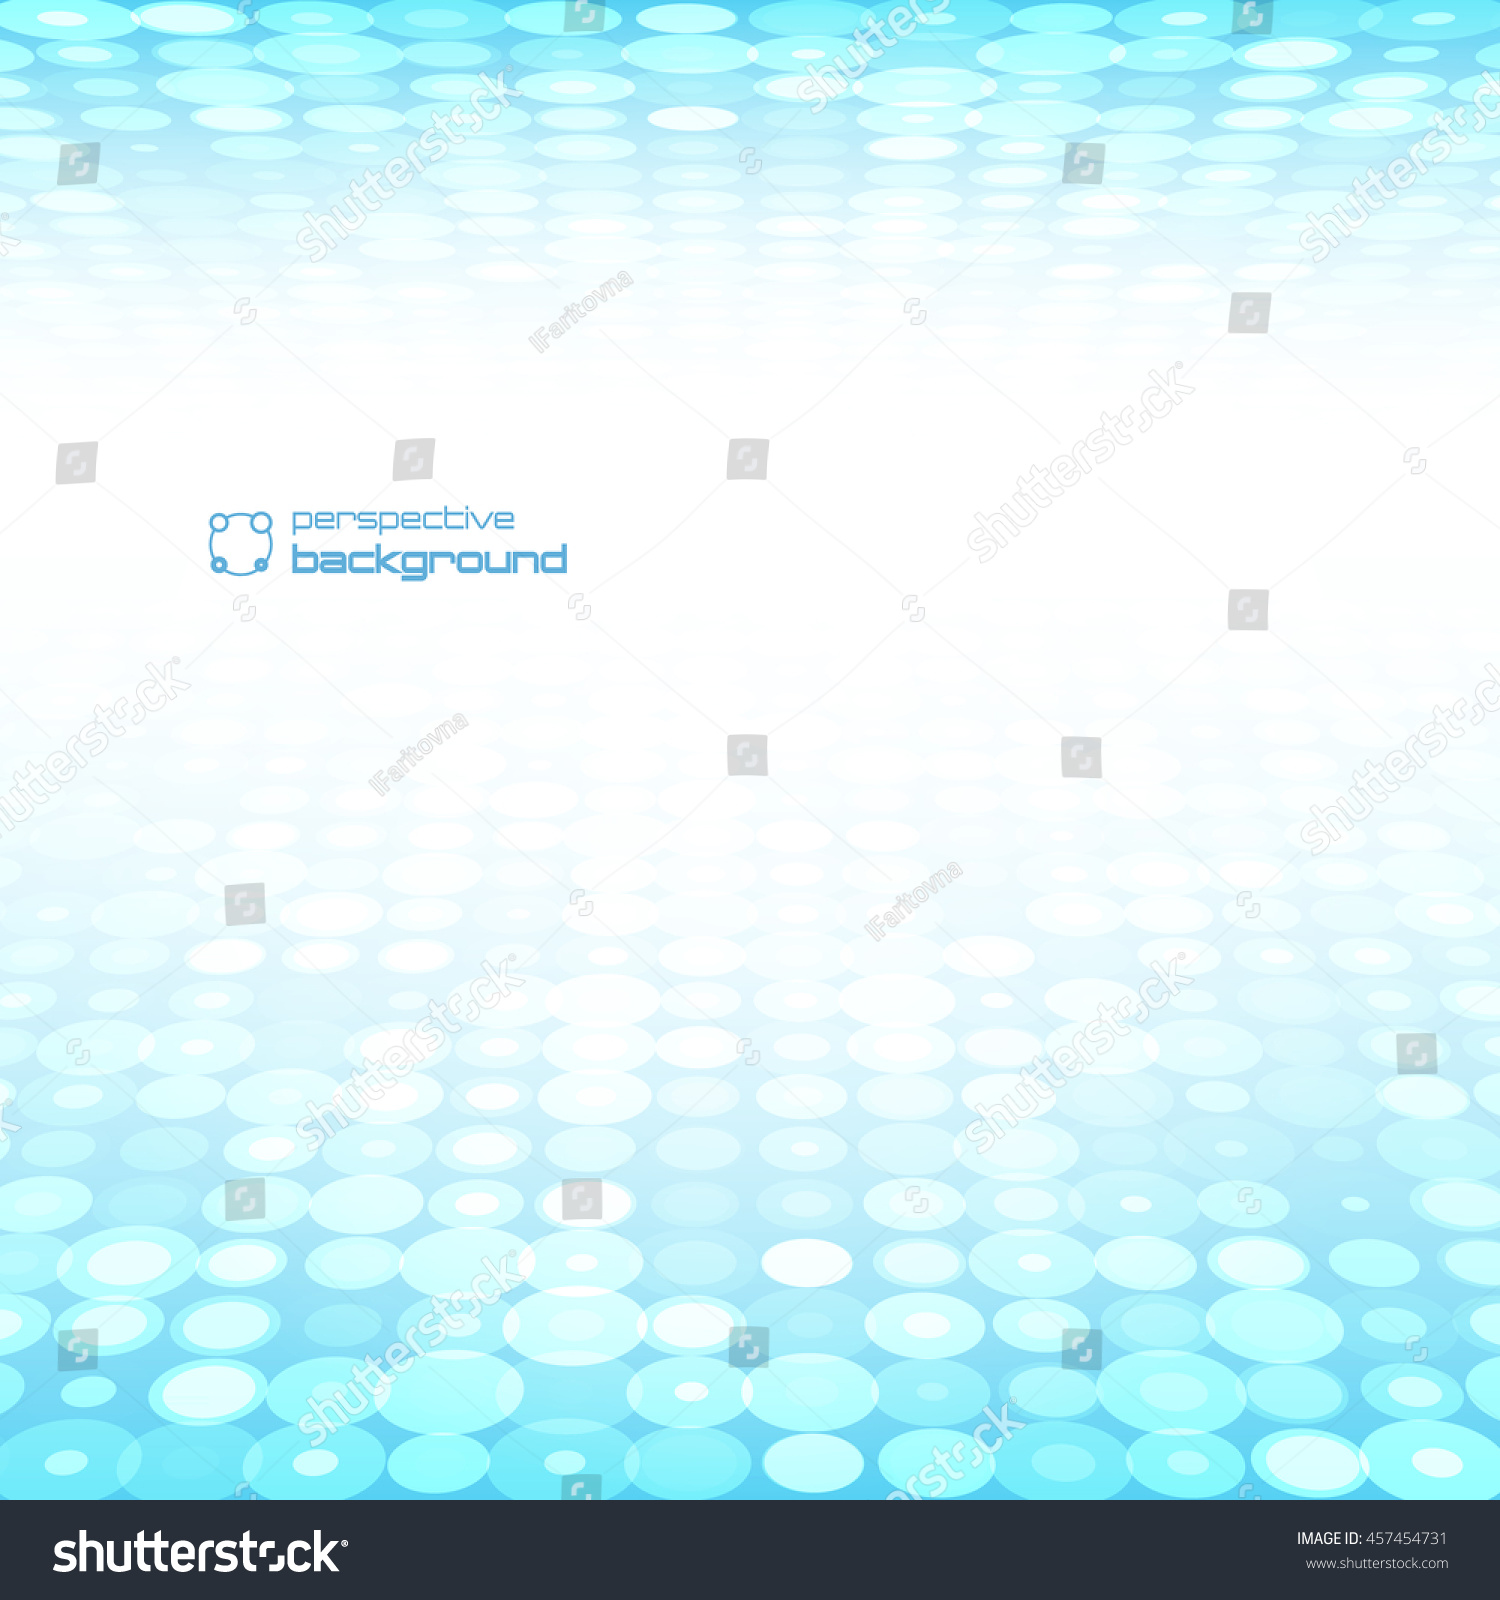 background backgrounds abstract advertisements - photo #47